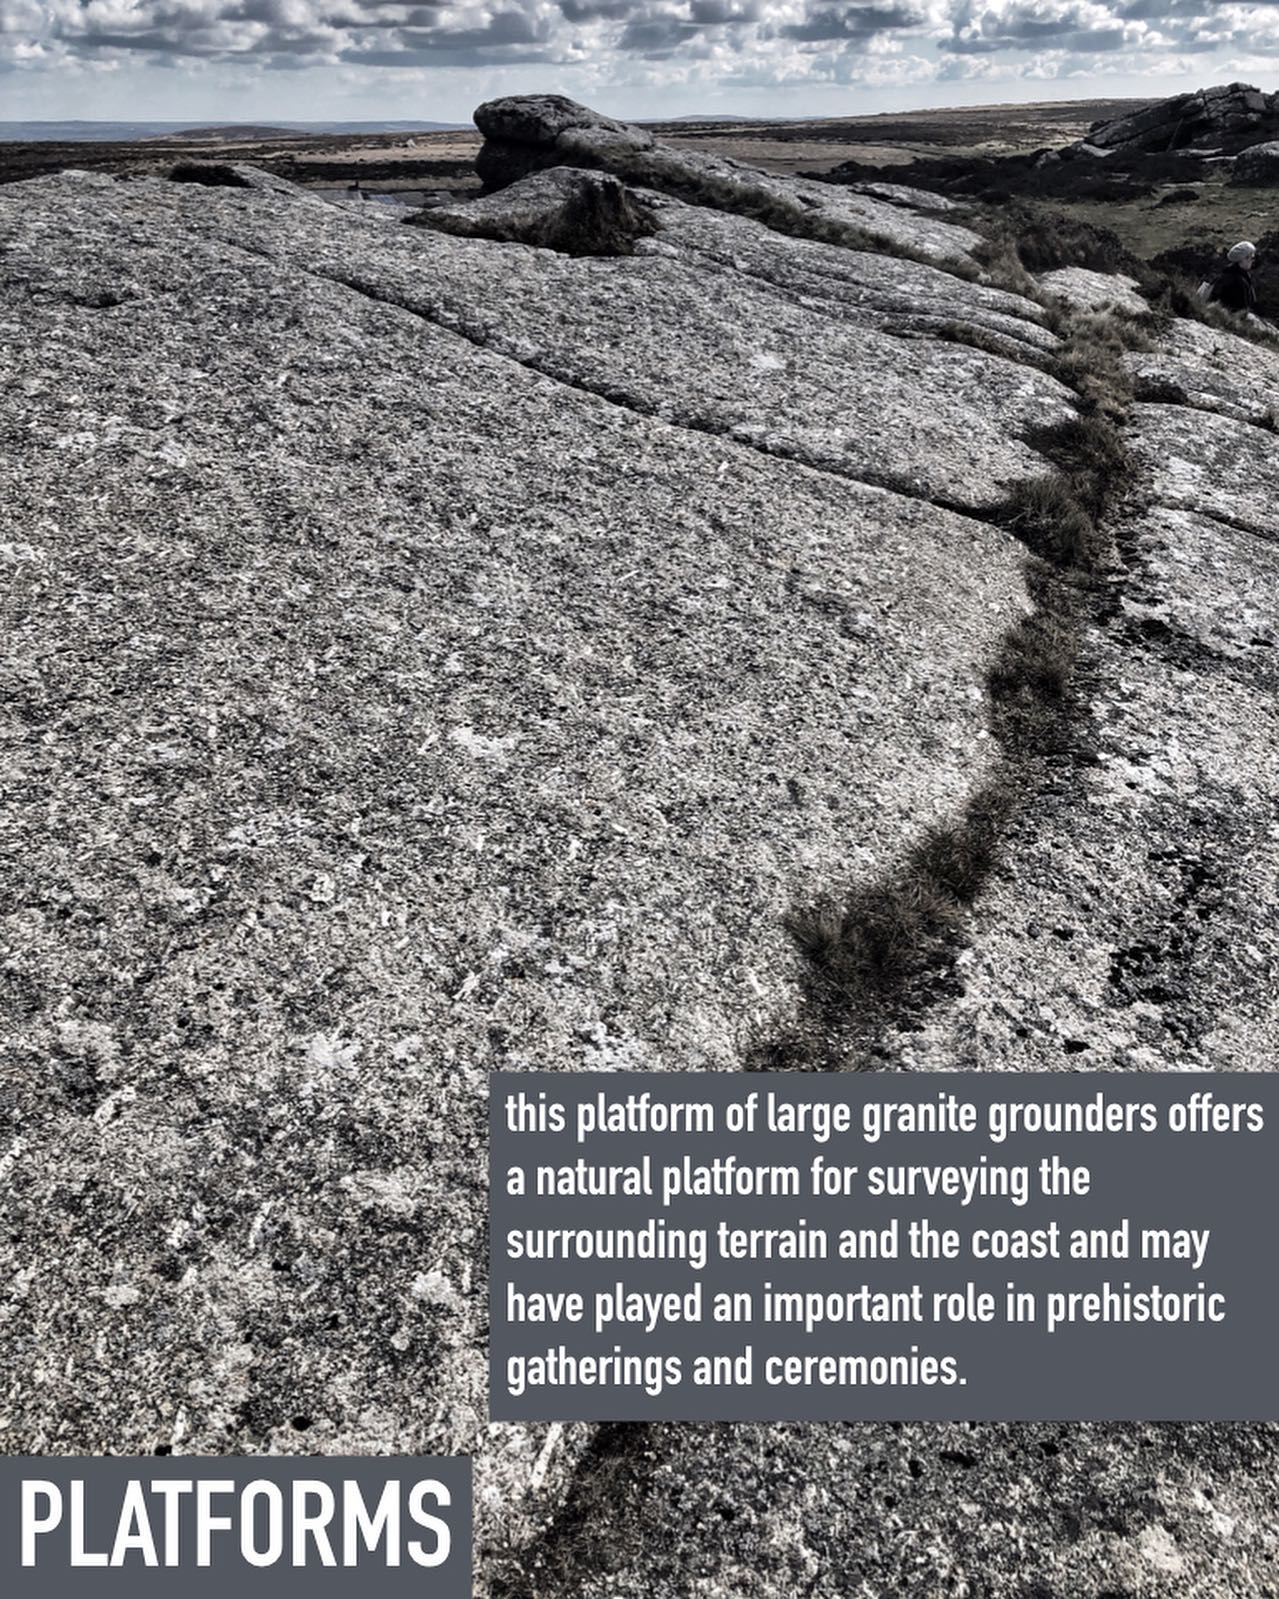 this viewing platform of large granite grounders offers a natural amphitheatre for surveying the surrounding terrain and the coast and may have played an important role in prehistoric gatherings and ceremonies. these special places have always played such a role throughout our human history in marking out the terrain to come together, take respite and to exchange stories and goods.#gathering, #prehistory, #prehistoricsites, #prehistoriclandscape, #exchange, #ancientsites, #ancientsite, #ancientwisdom, #gatheringplaces, #naturalamphitheatre, #ancientamphitheatre, #specialsites, #zennorhill, #westpenwith,#montagecity.com